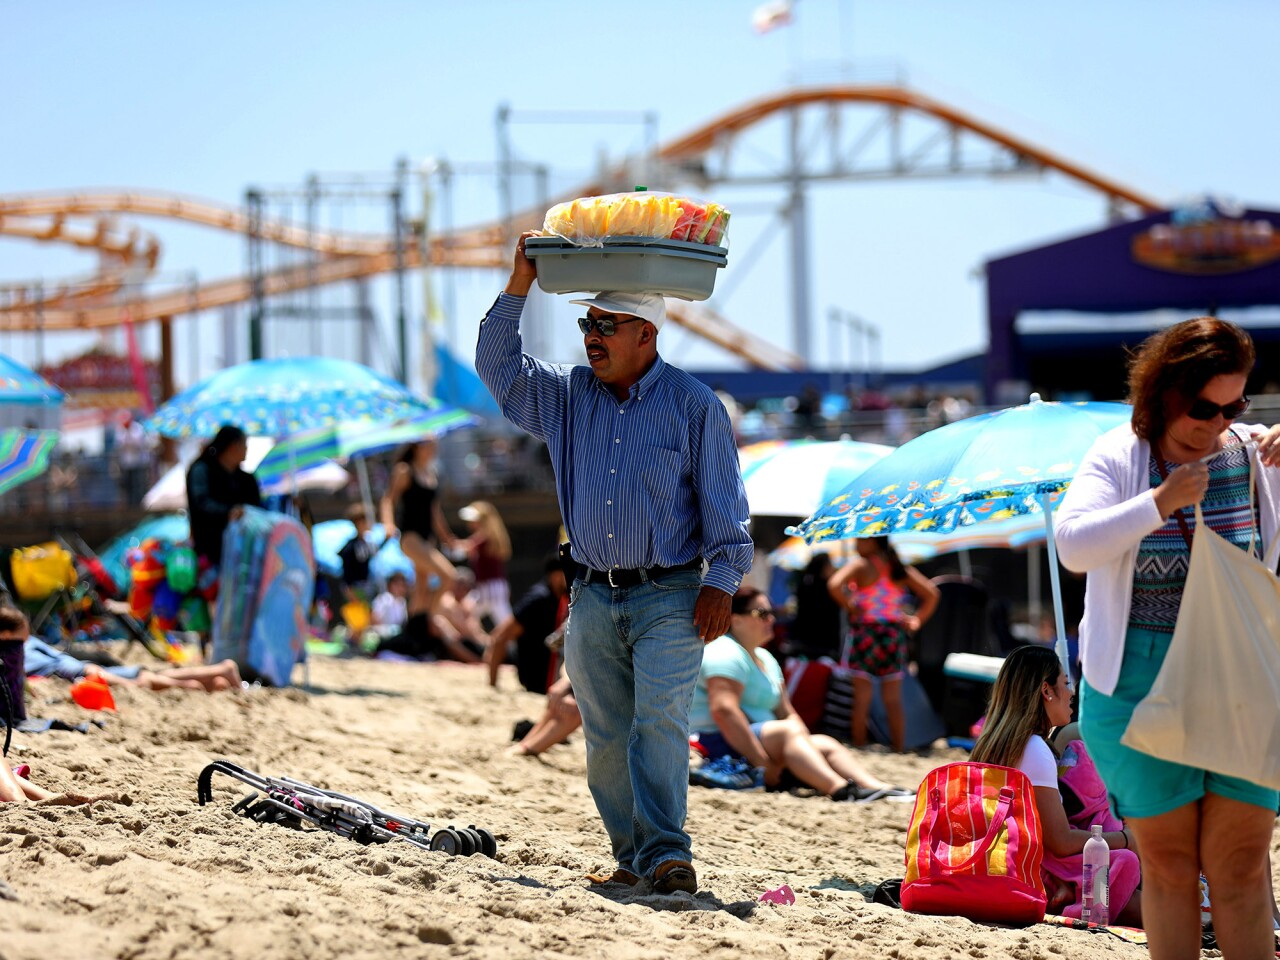 Santa Monica street vendors struggle amid new licensing rules